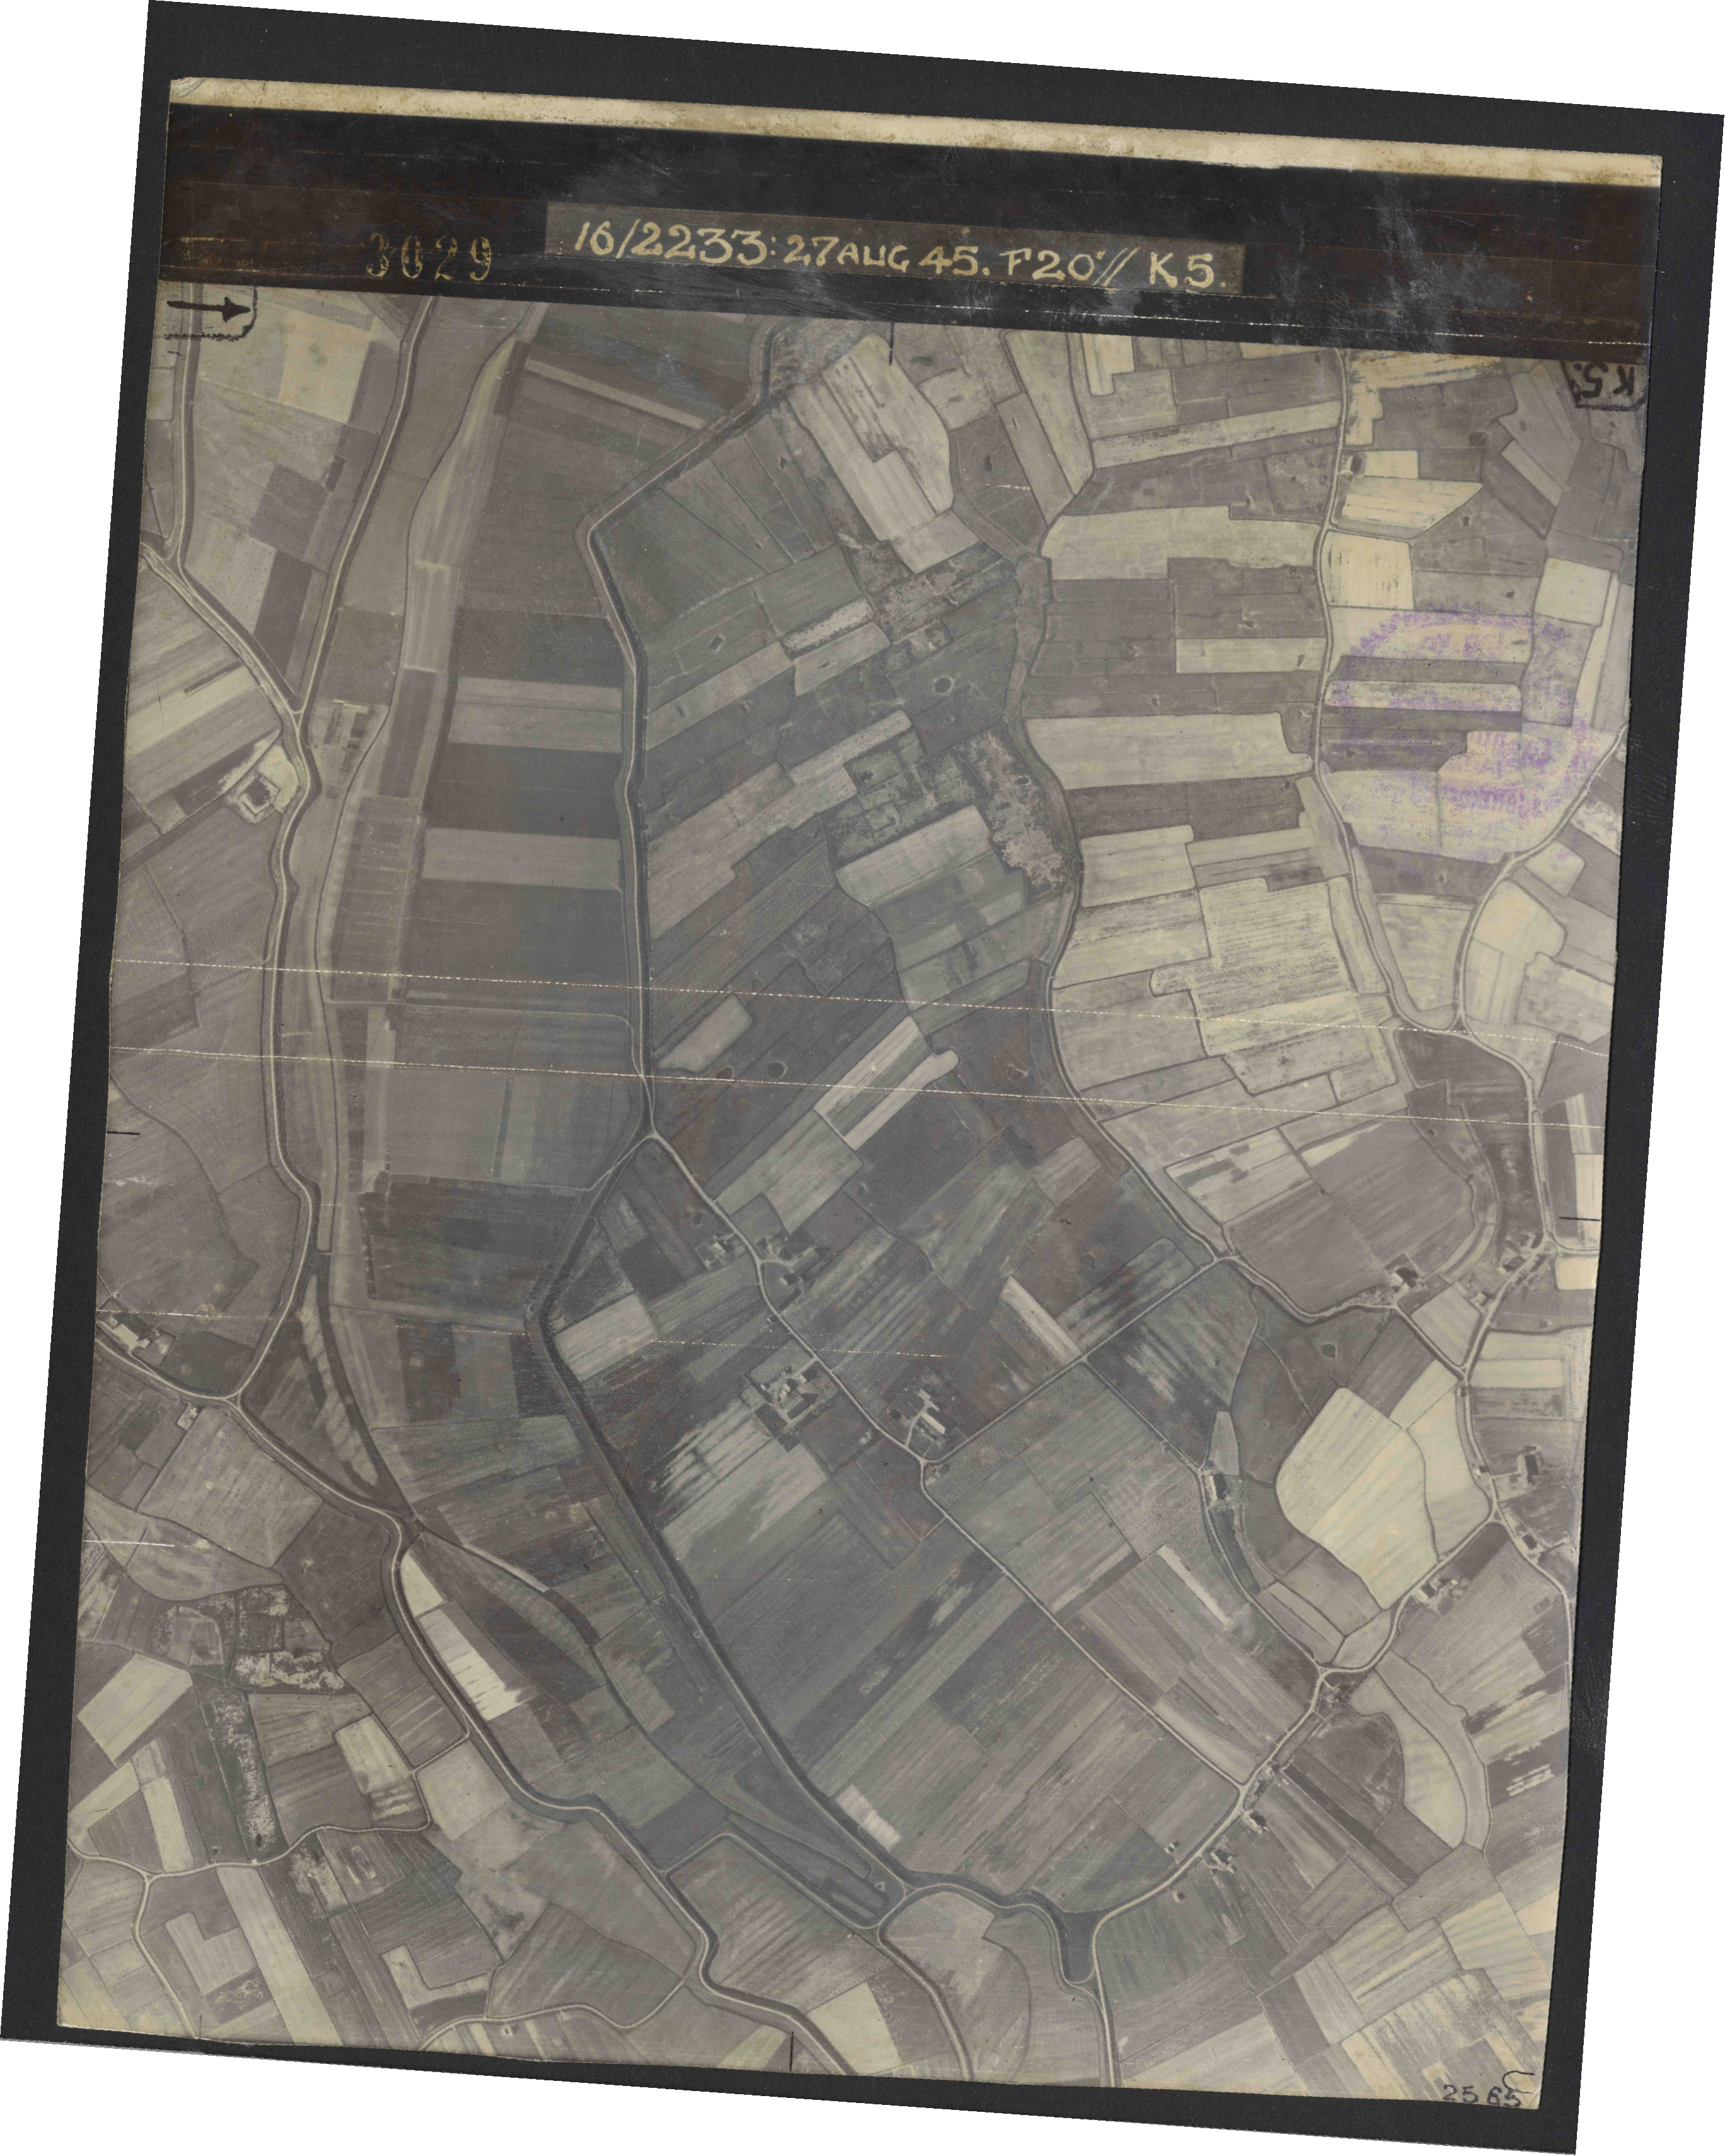 Collection RAF aerial photos 1940-1945 - flight 034, run 09, photo 3029